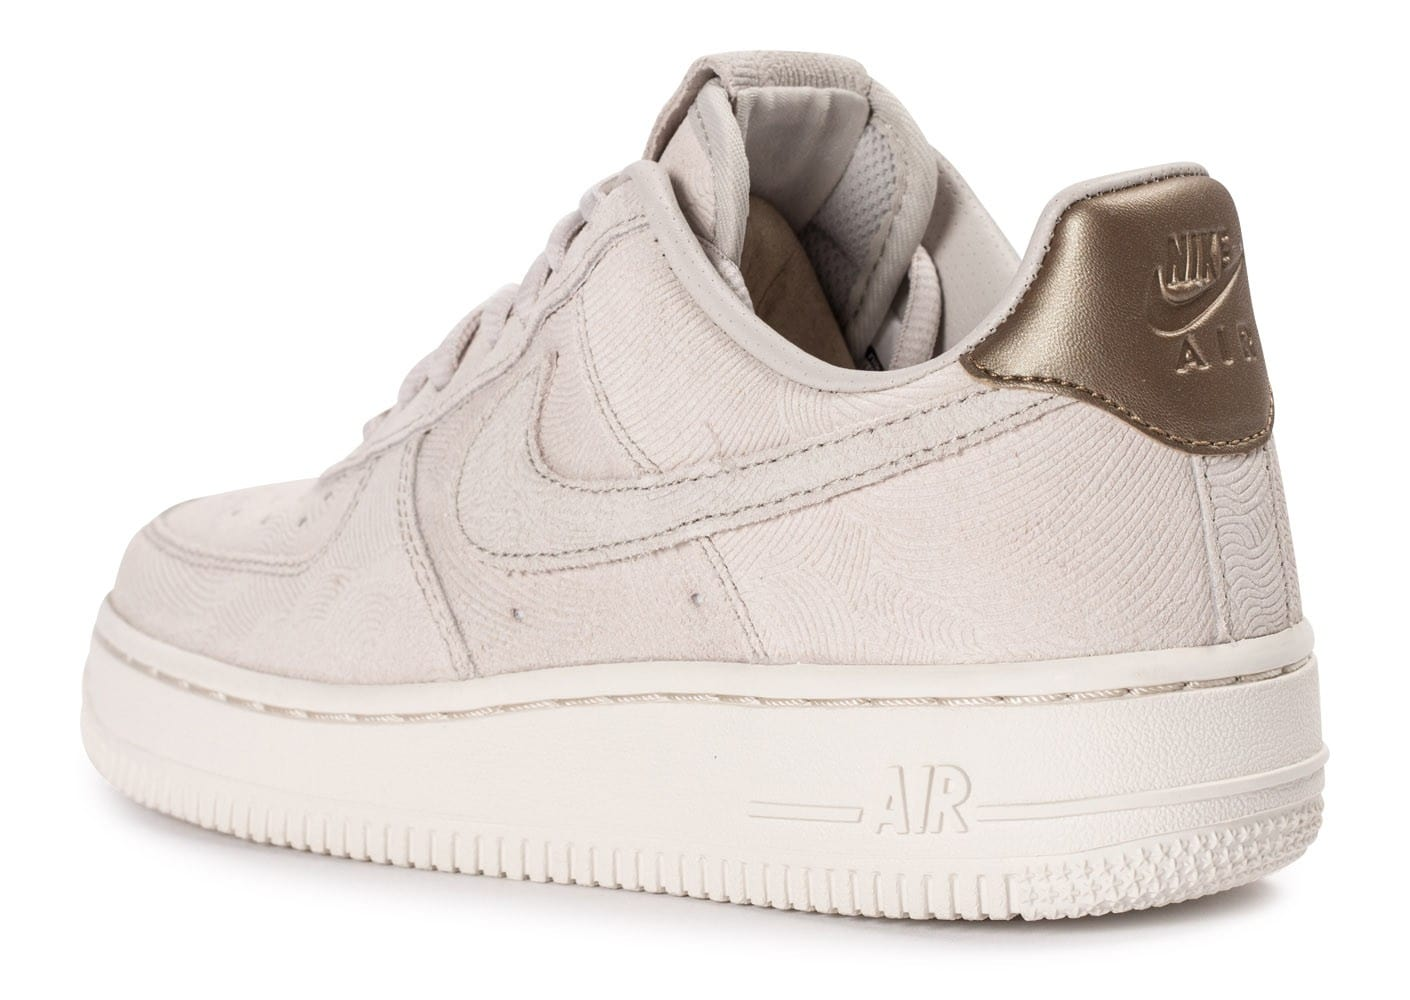 Nike Air Force 1 Premium Suede Gamma grey Chaussures